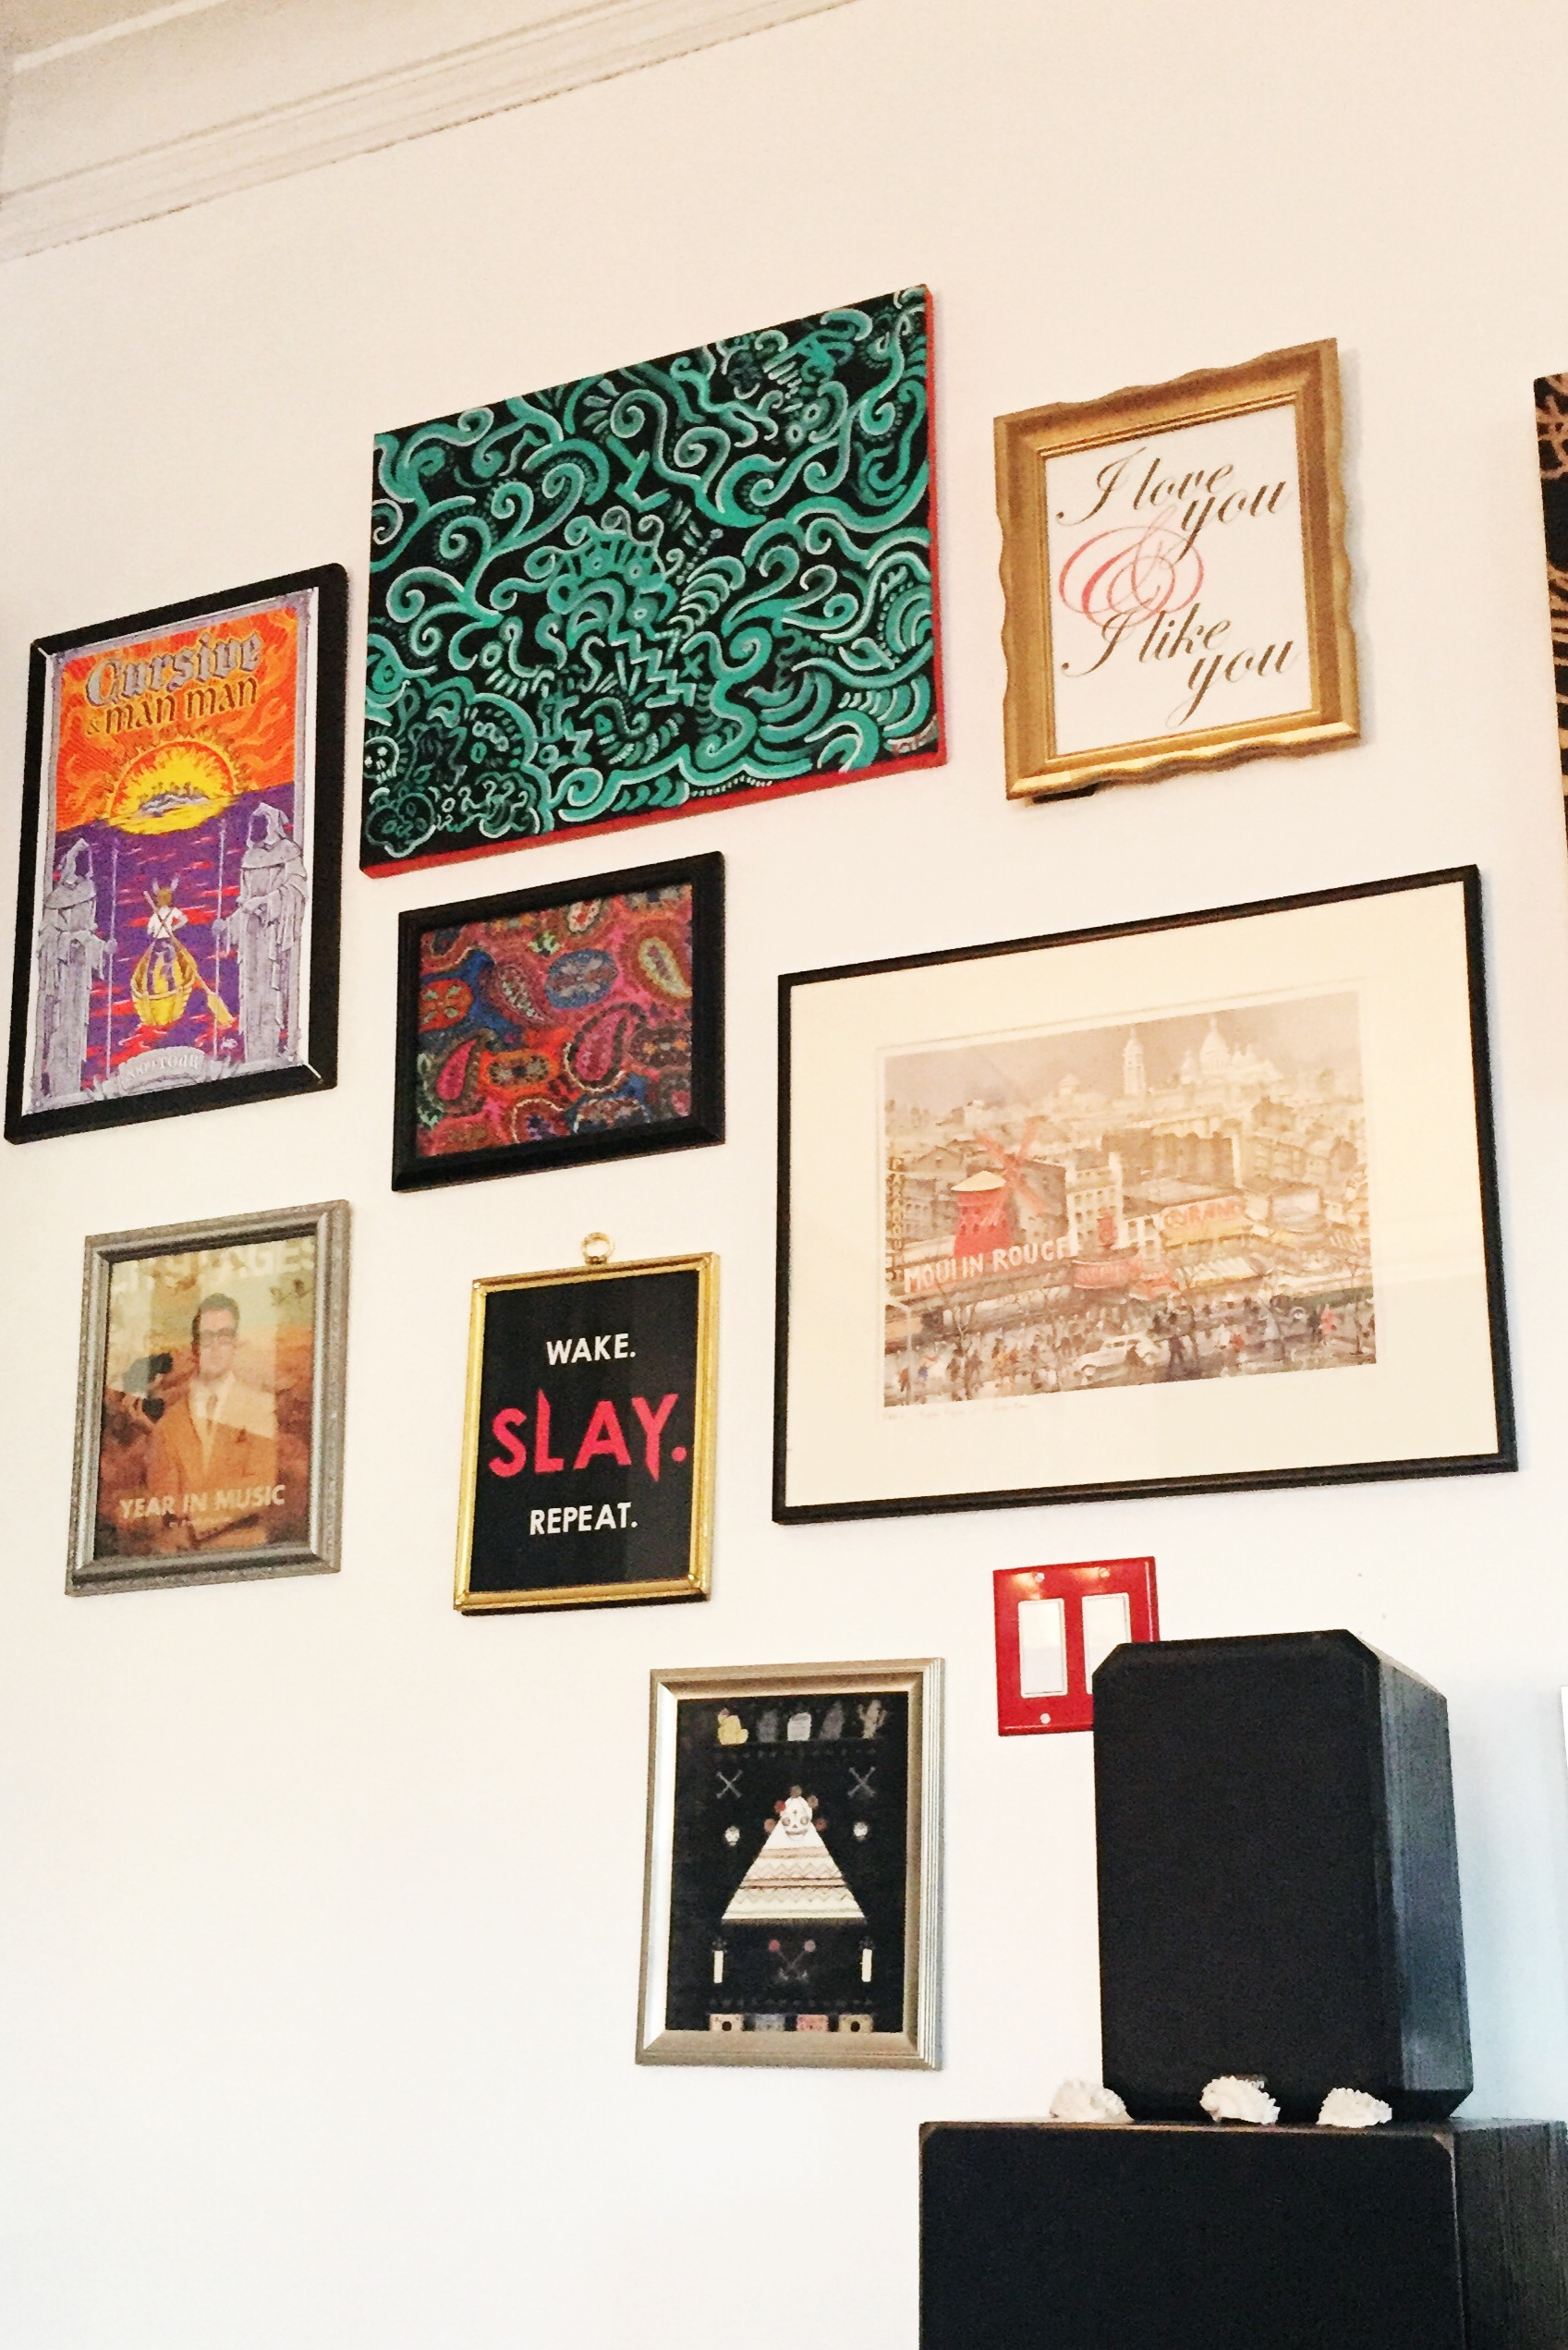 Here is a closeup of my gallery wall. I went with a mixture of frame styles and colors. Also don't Jeni's prints look great?!